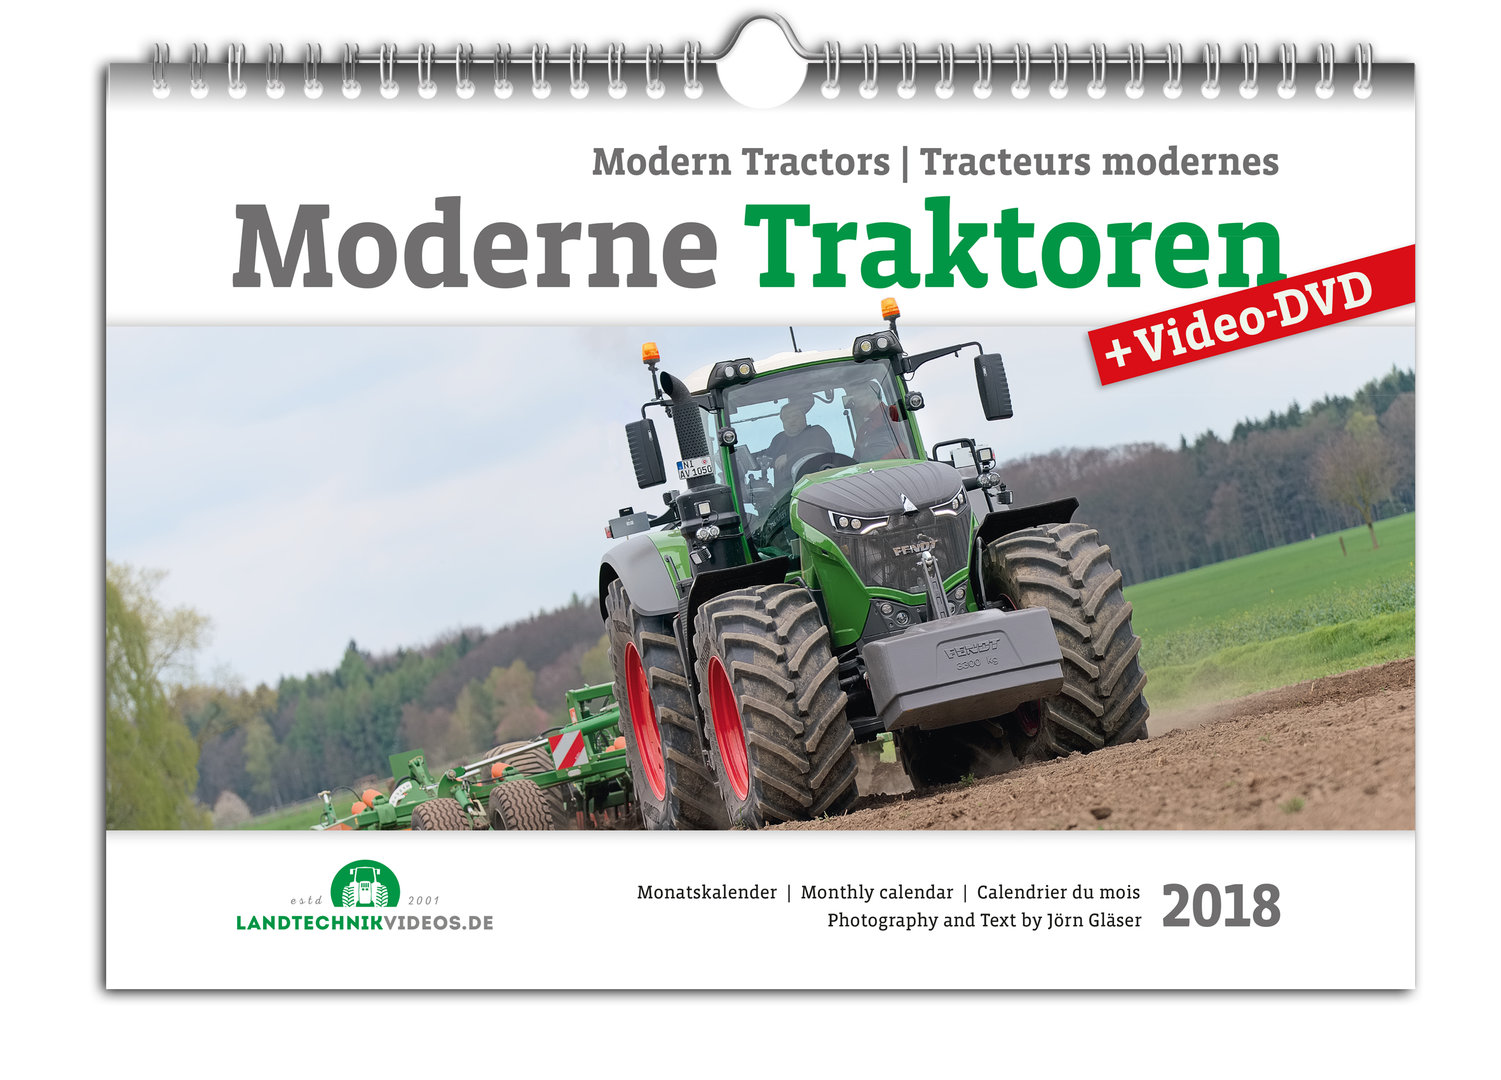 Modern Tractors Monthly Calendar 2018 + Video-DVD